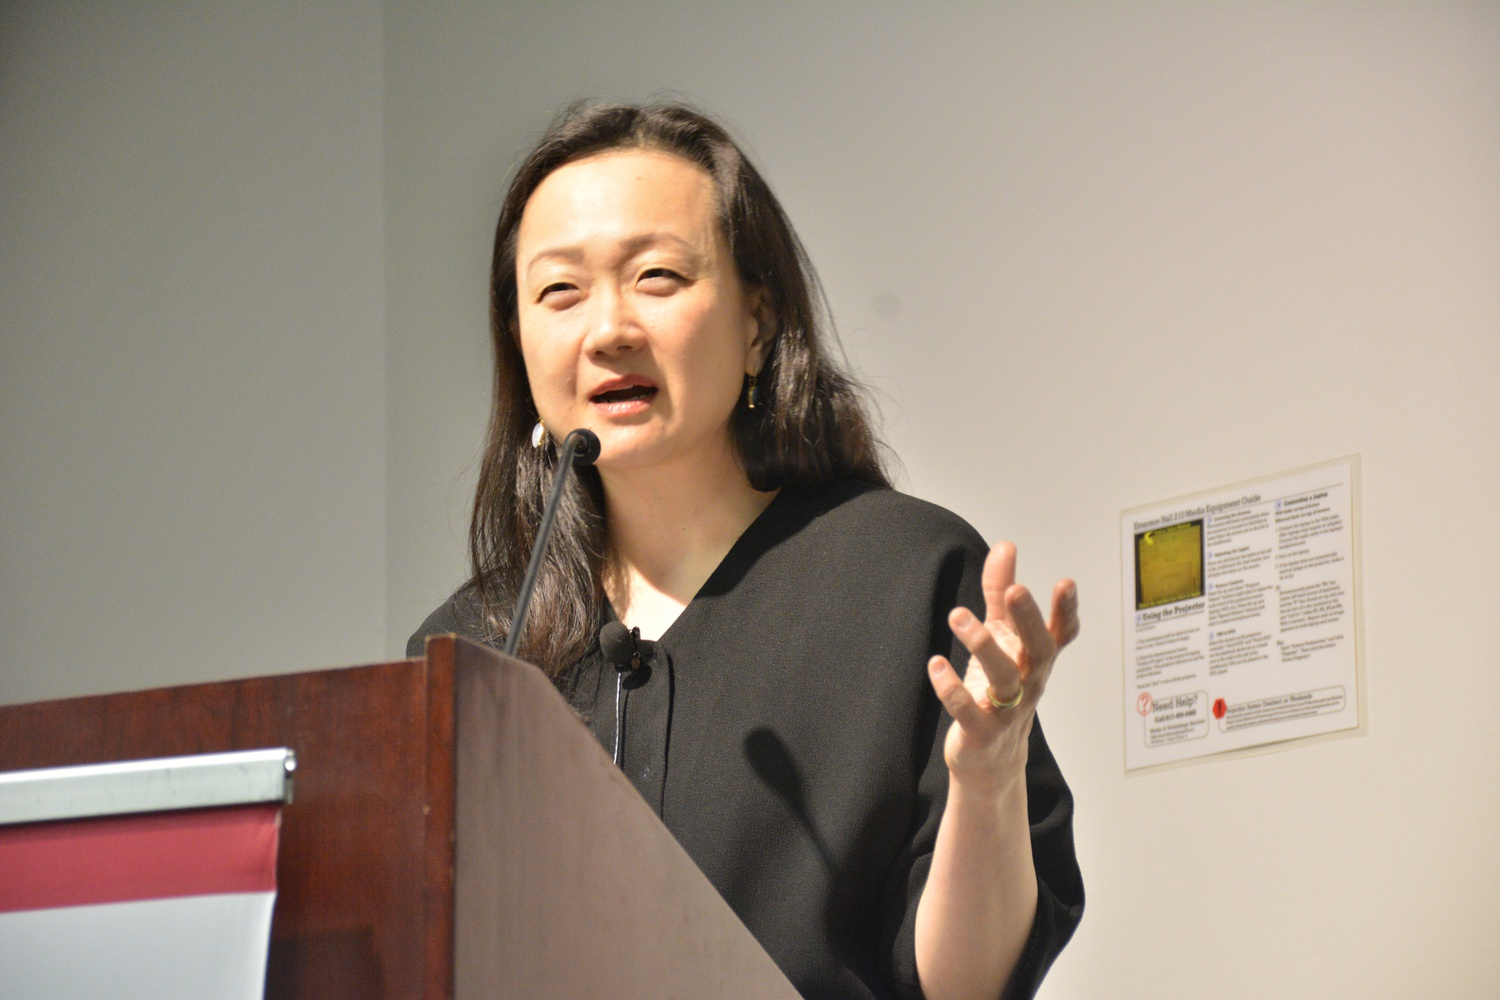 Min Jin Lee, who is the author of Free Food for Millionaires (2007) and Pachinko (2017), spoke about her publications and work at Emerson Hall.